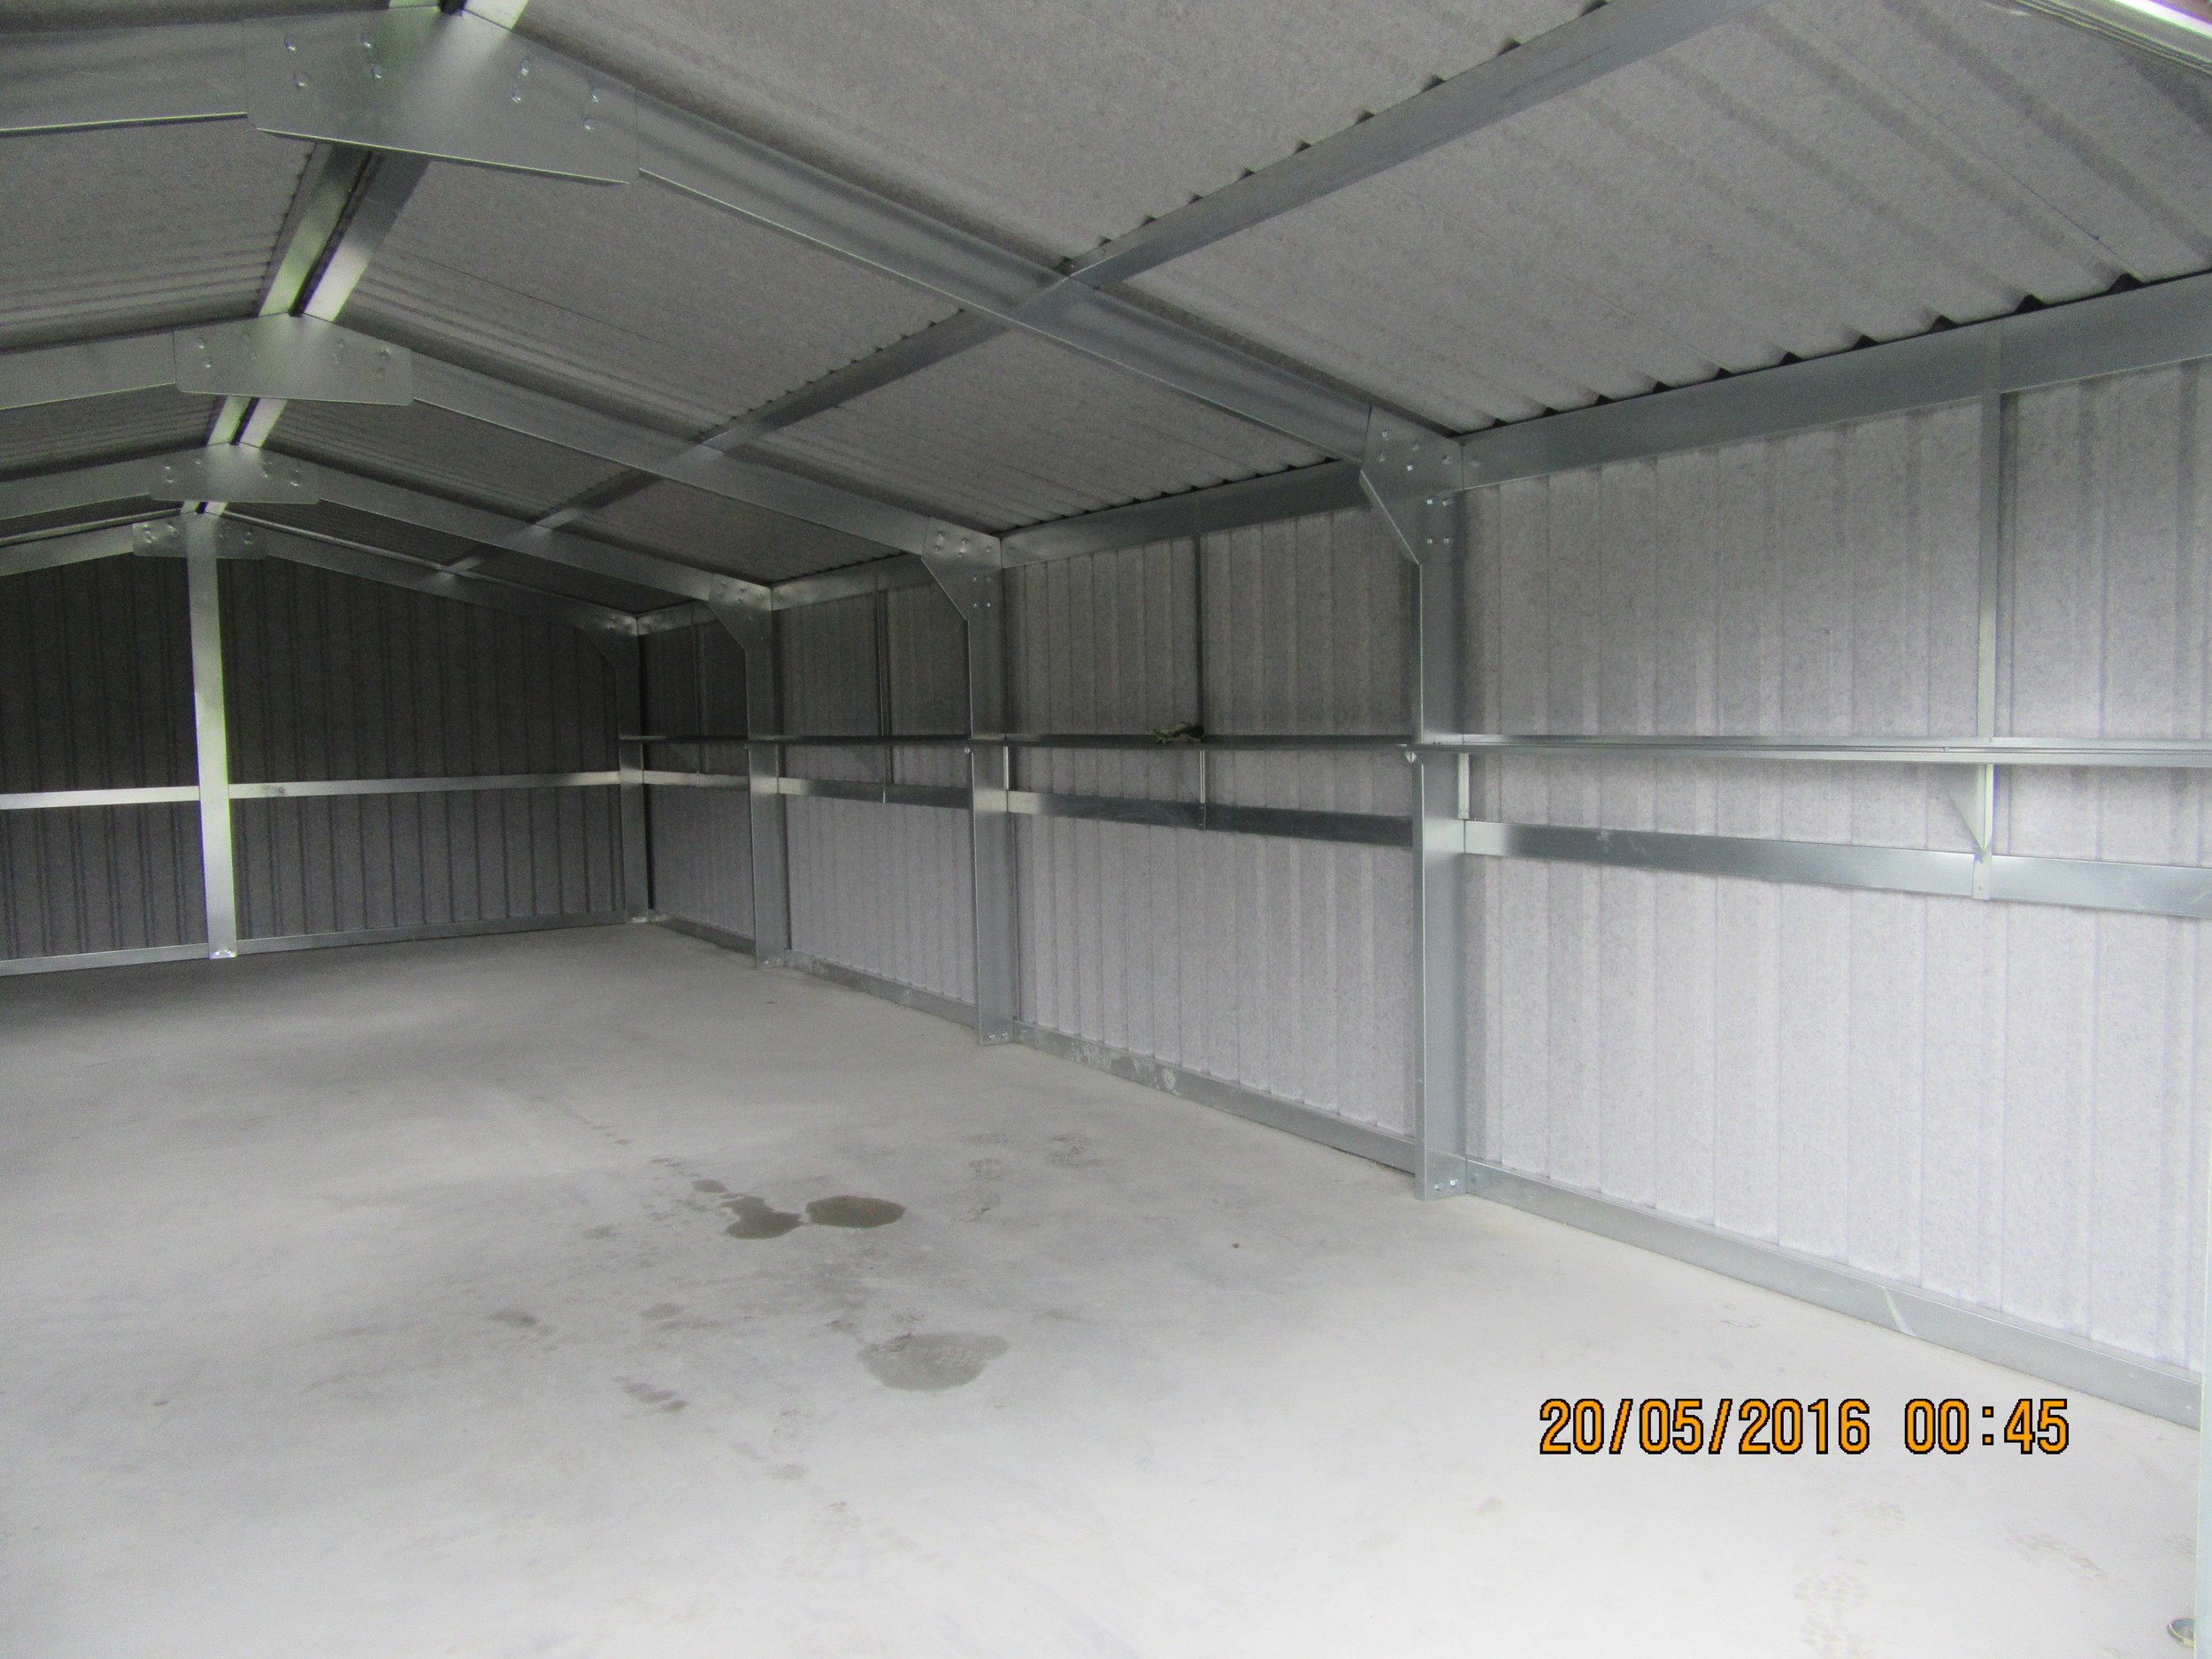 A1-Sheds-Cork-Steel-Shed-Garages-Interior-Quality-Local.JPG